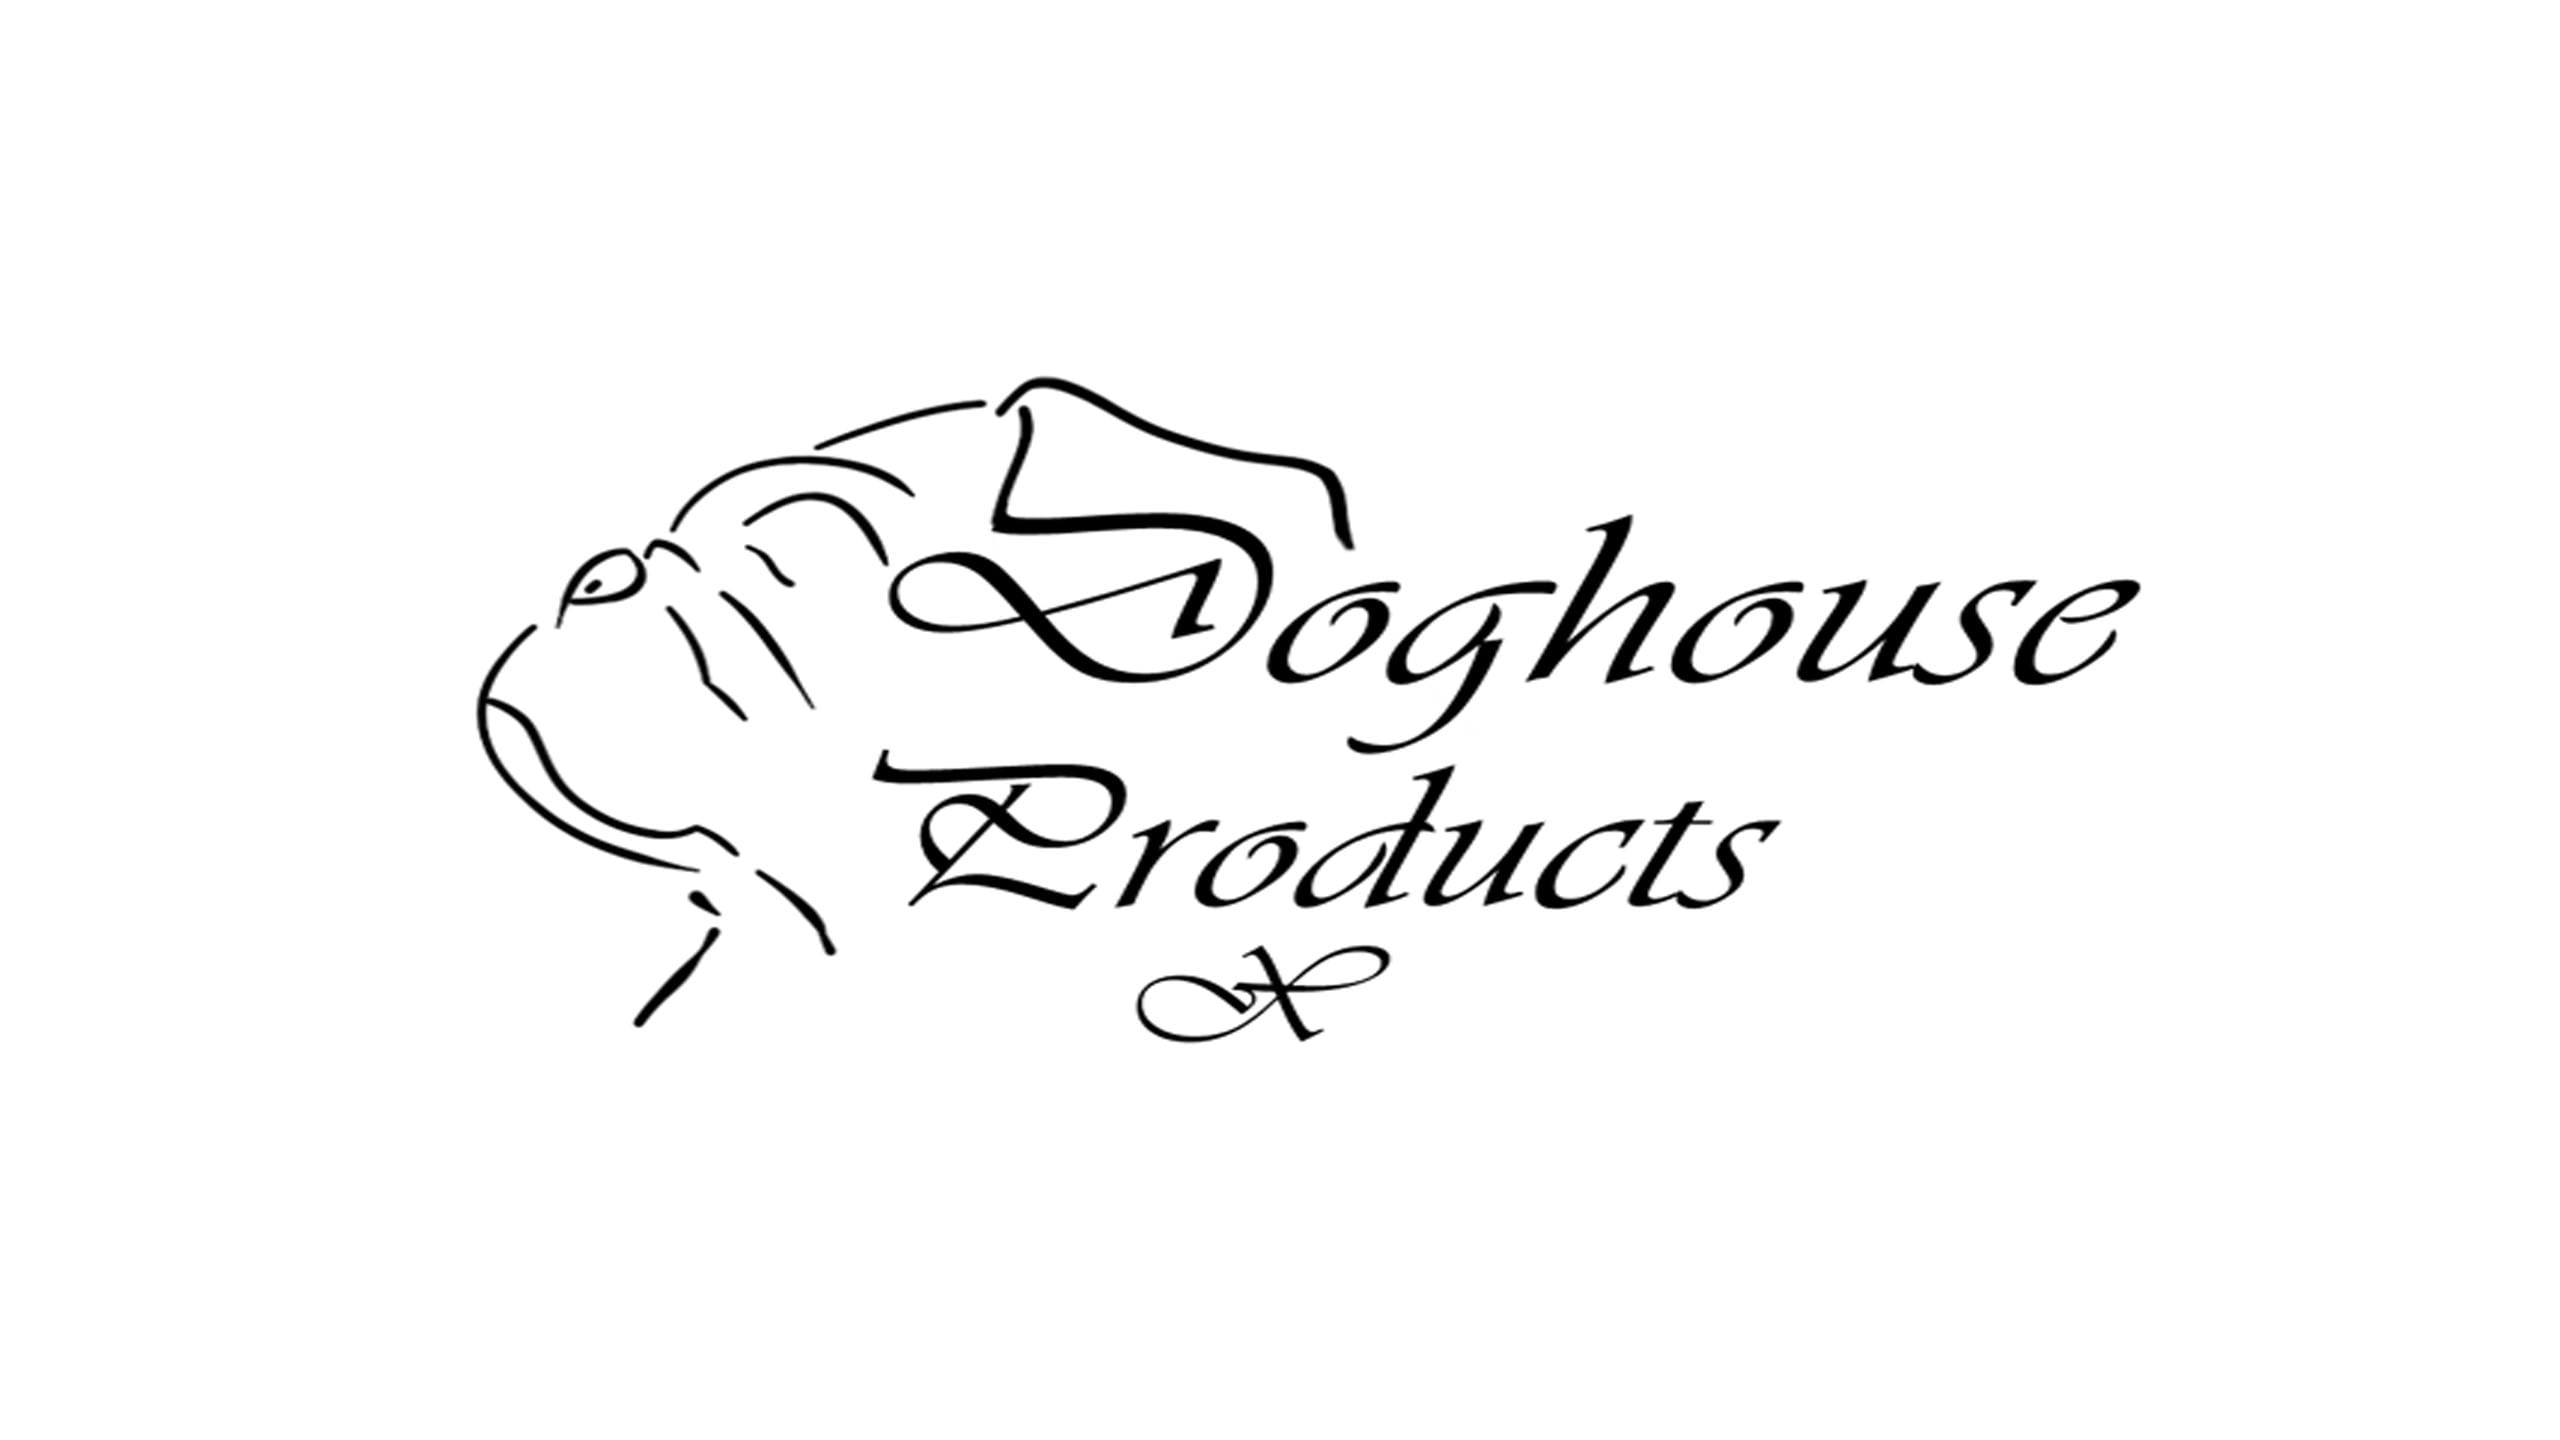 Doghouse products